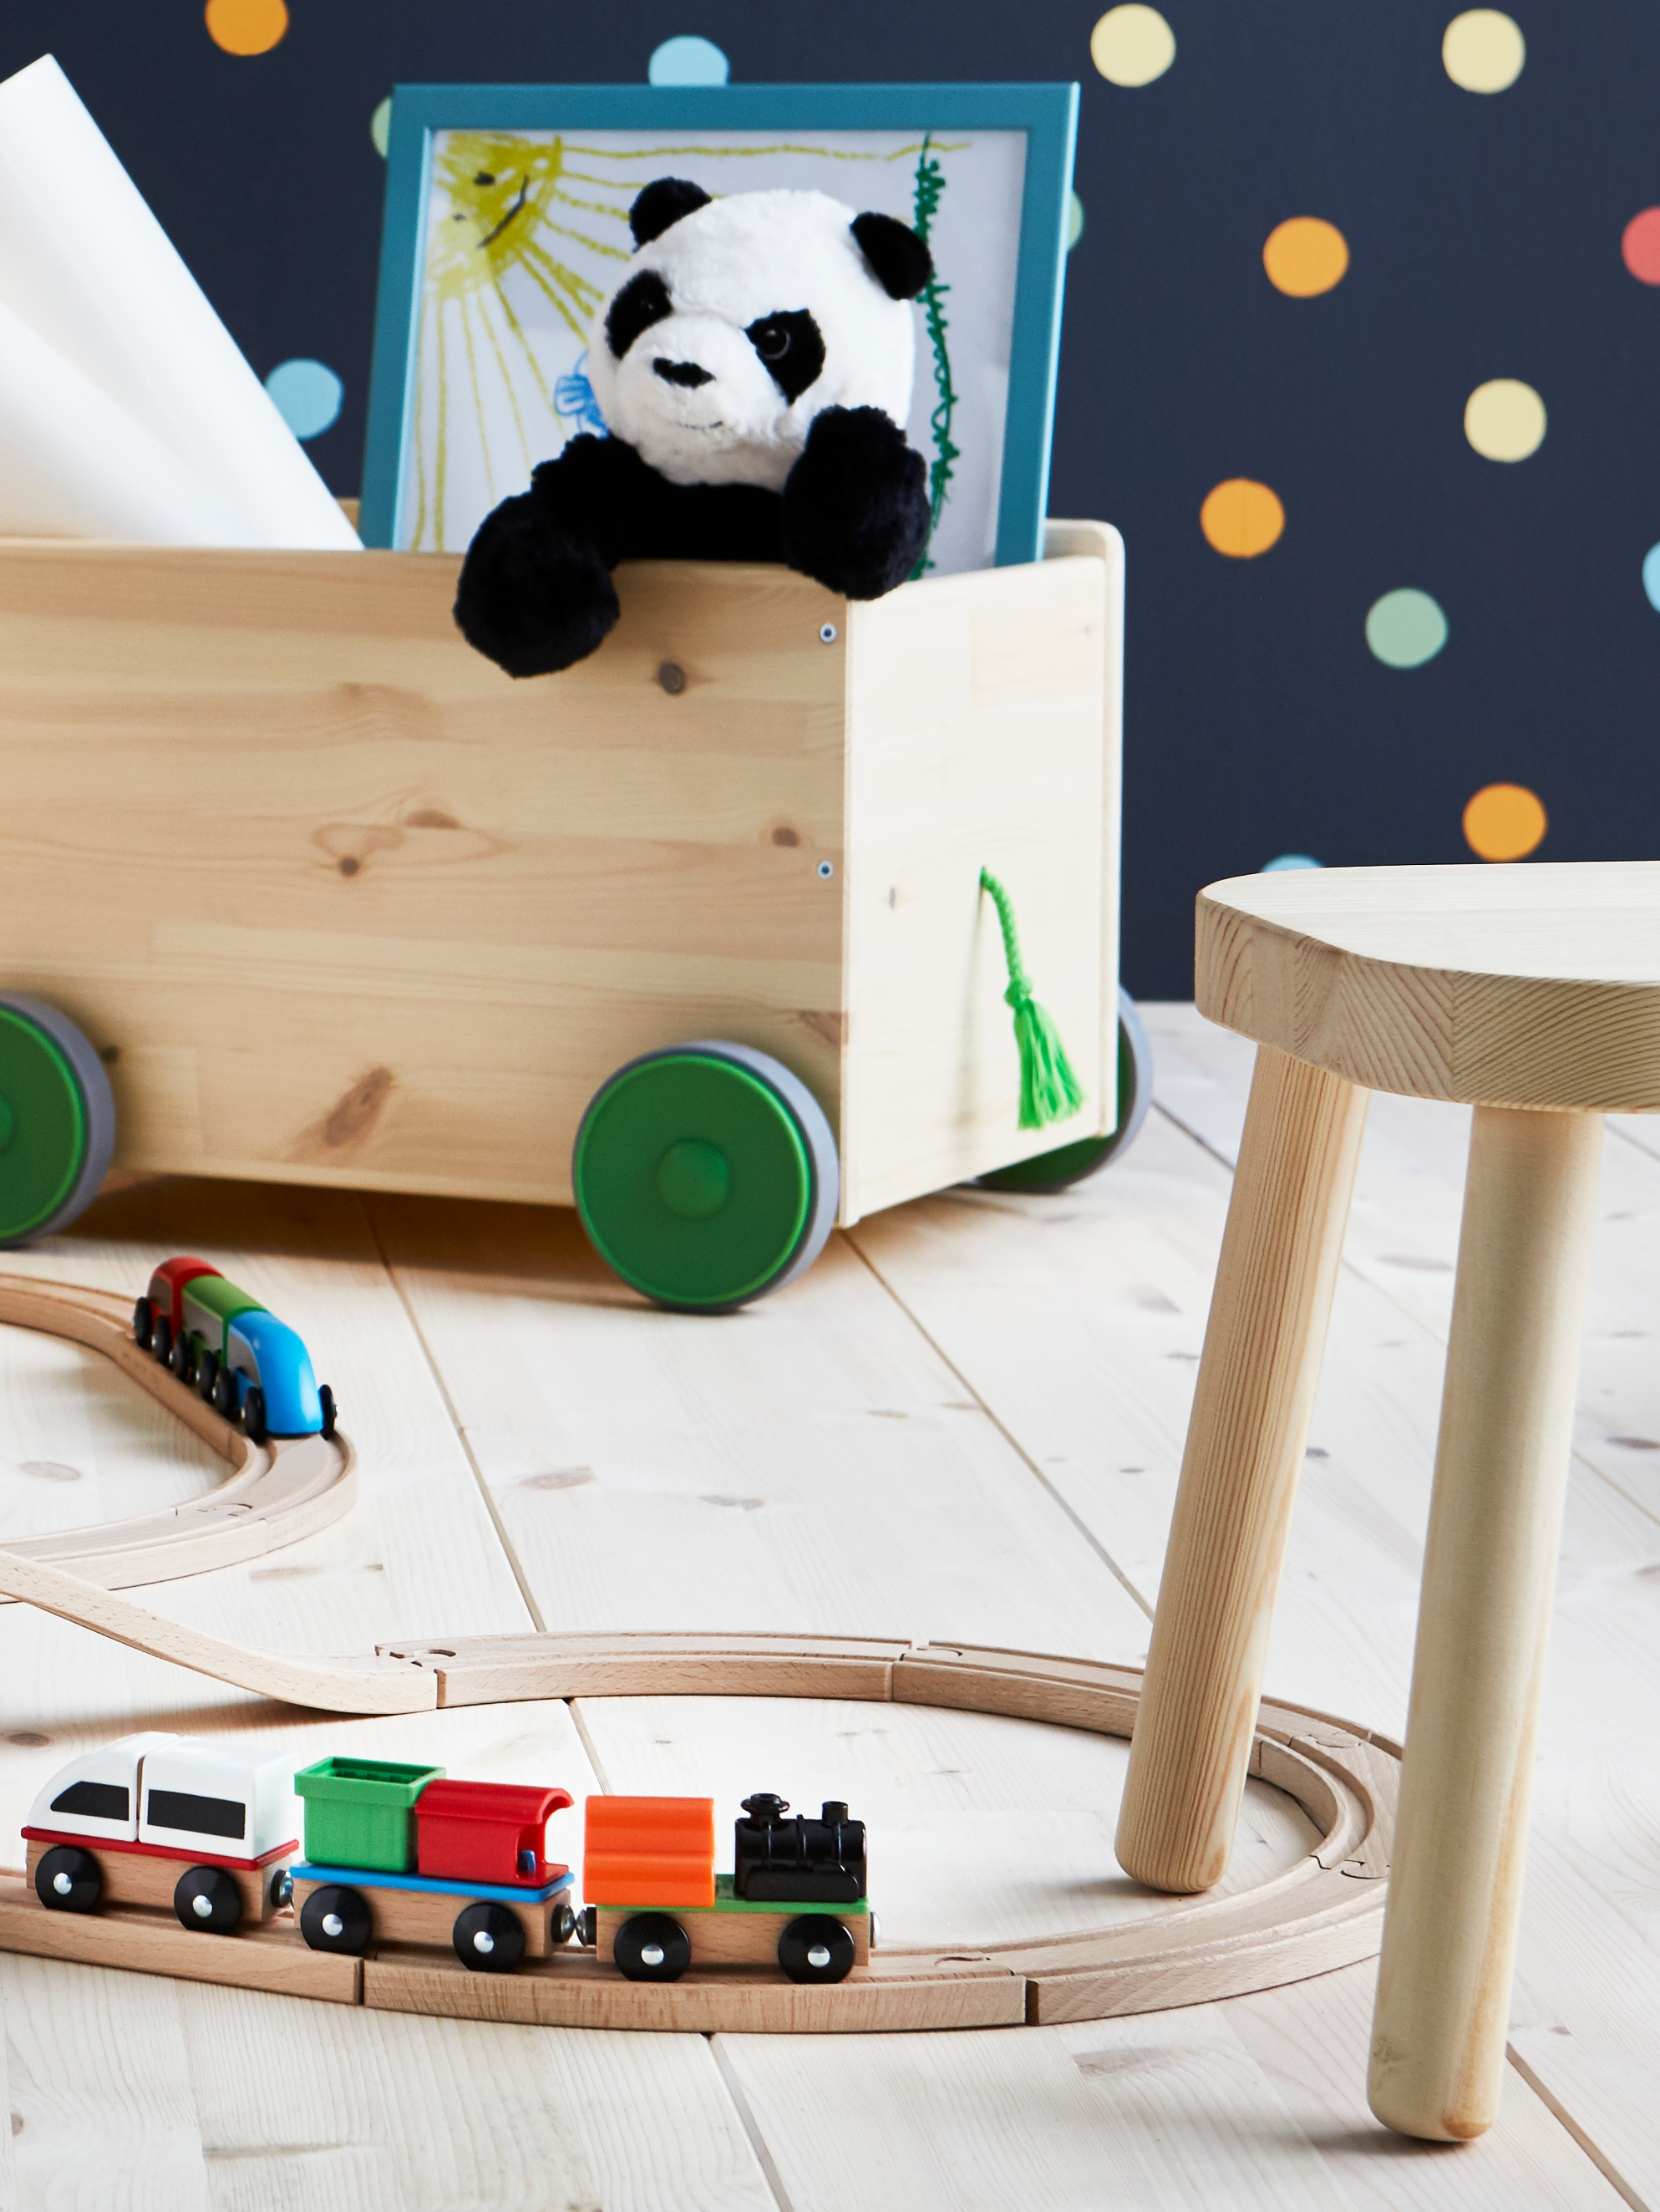 A LILLABO wooden train set with a train laid out on a wooden floor.